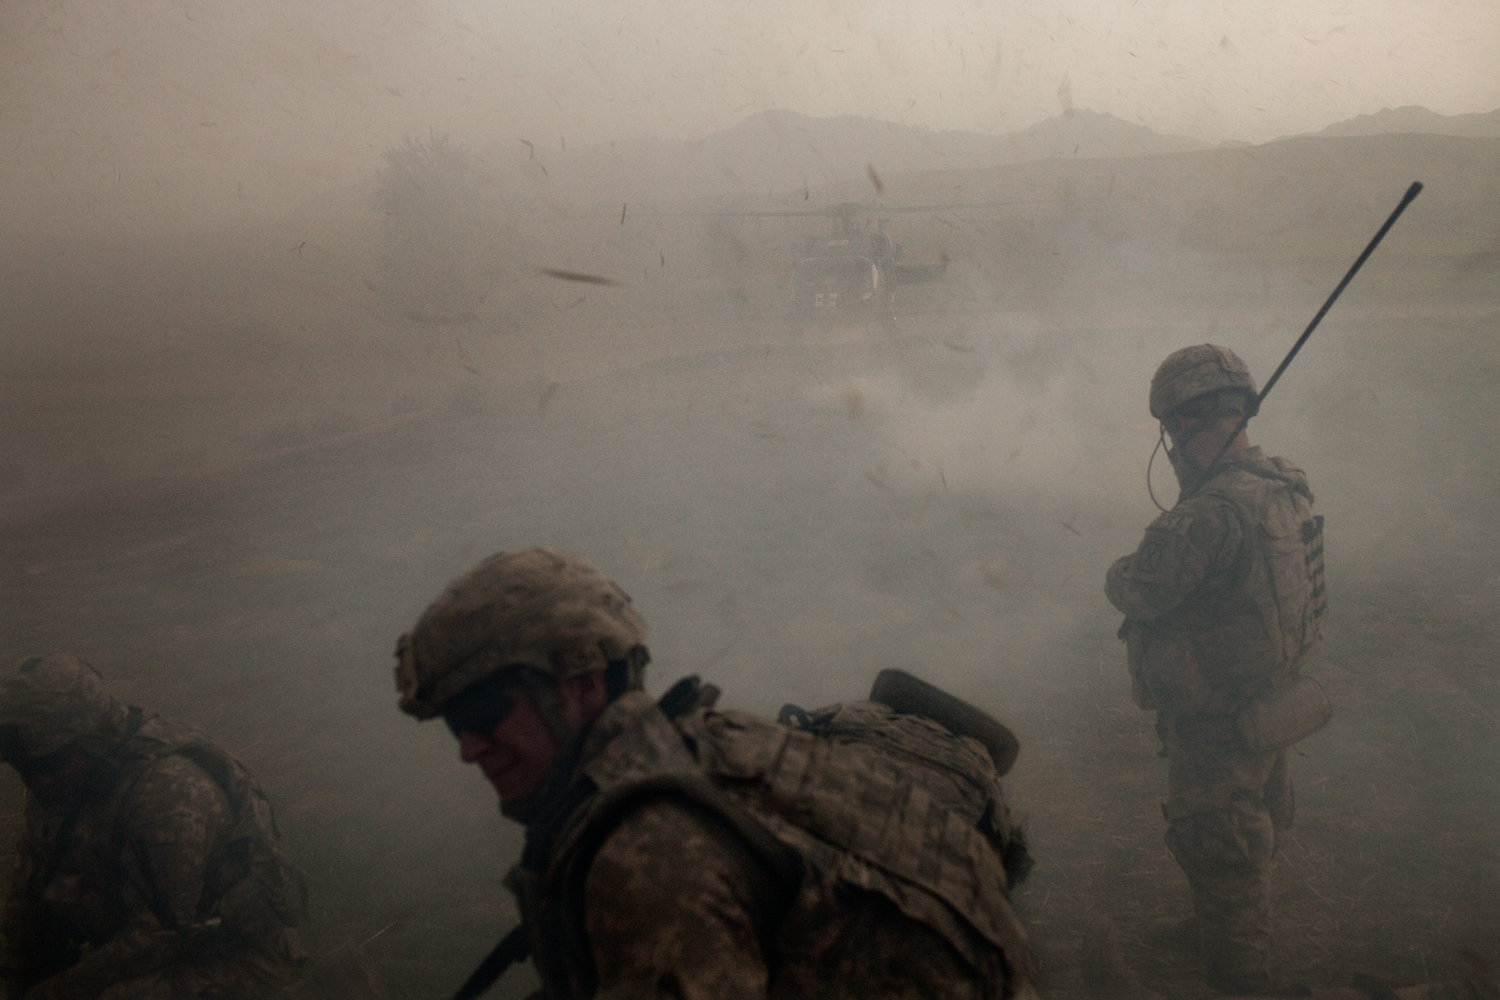 Medical evacuation helicopters land to evacuate three U.S. Army soldiers injured in an improvised explosive device attack on their vehicle in the Tangi Valley, Wardak Province, Afghanistan.